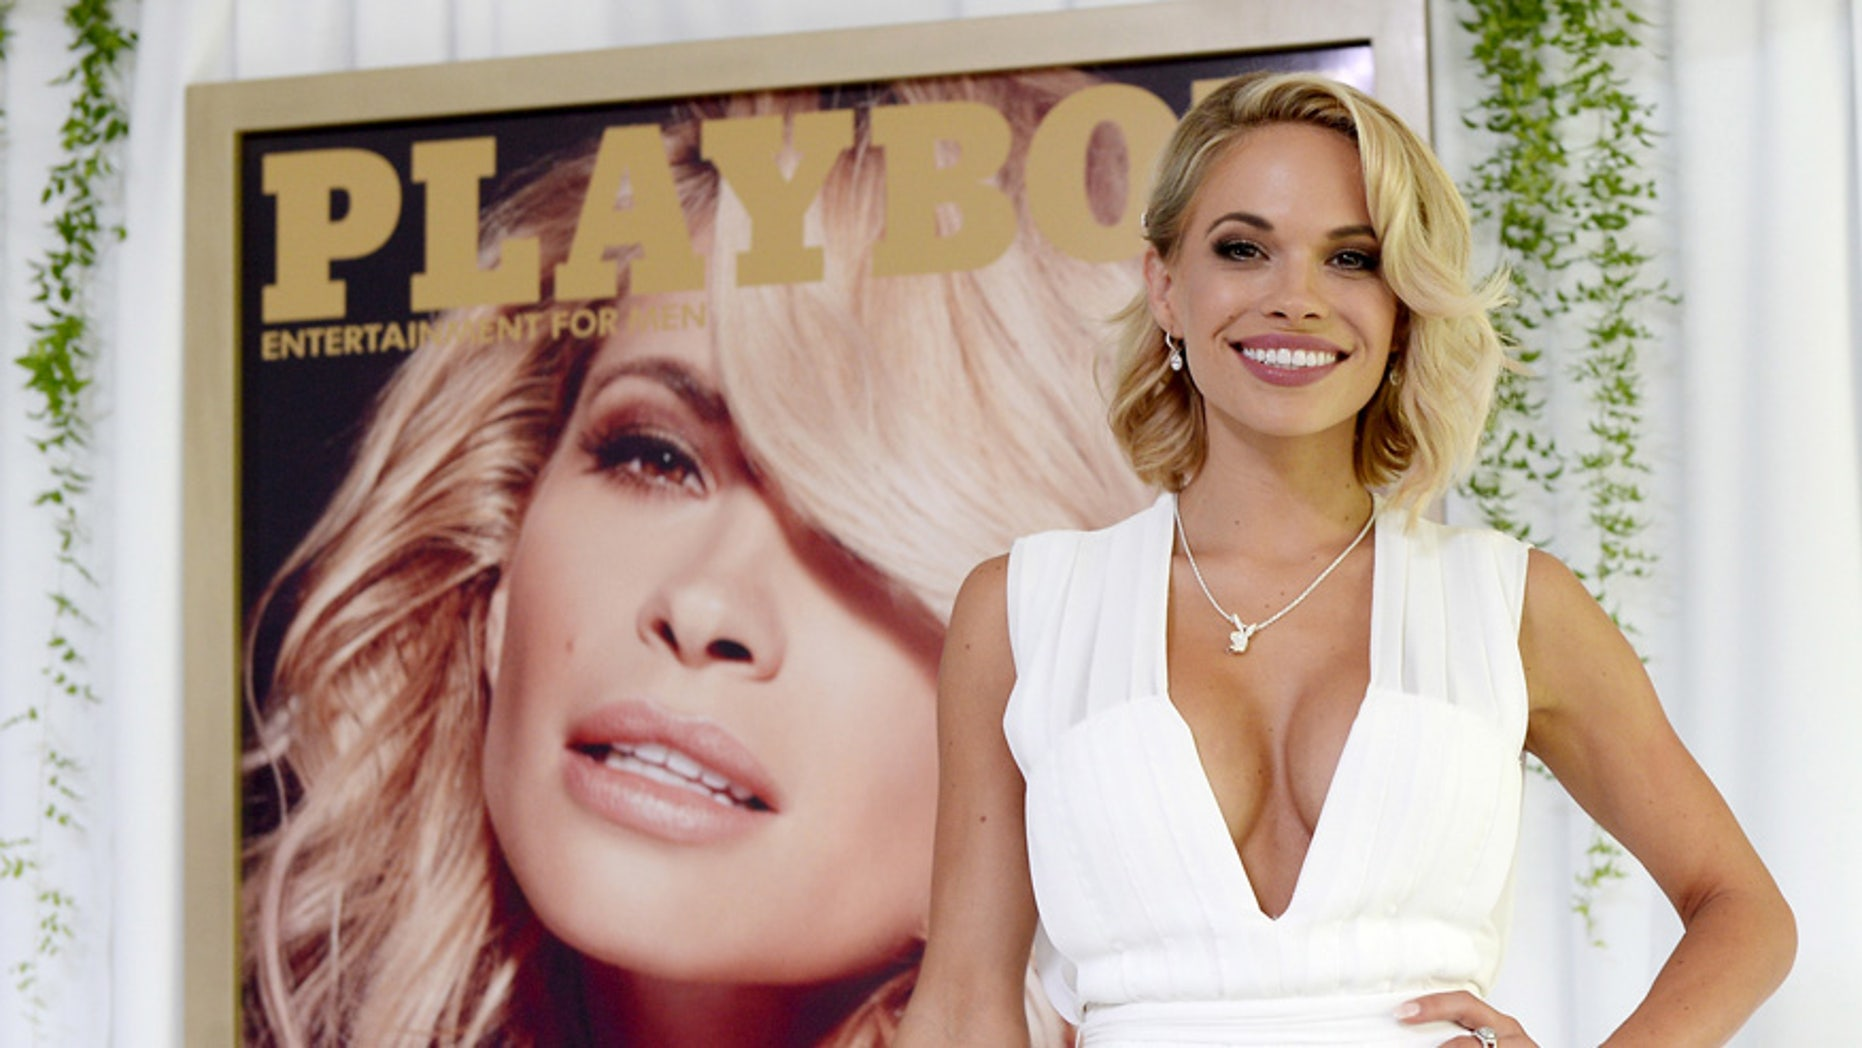 Dani Mathers, the 2015 Playmate of the Year, poses during a luncheon on the garden grounds of the Playboy Mansion in Los Angeles, California May 14, 2015.